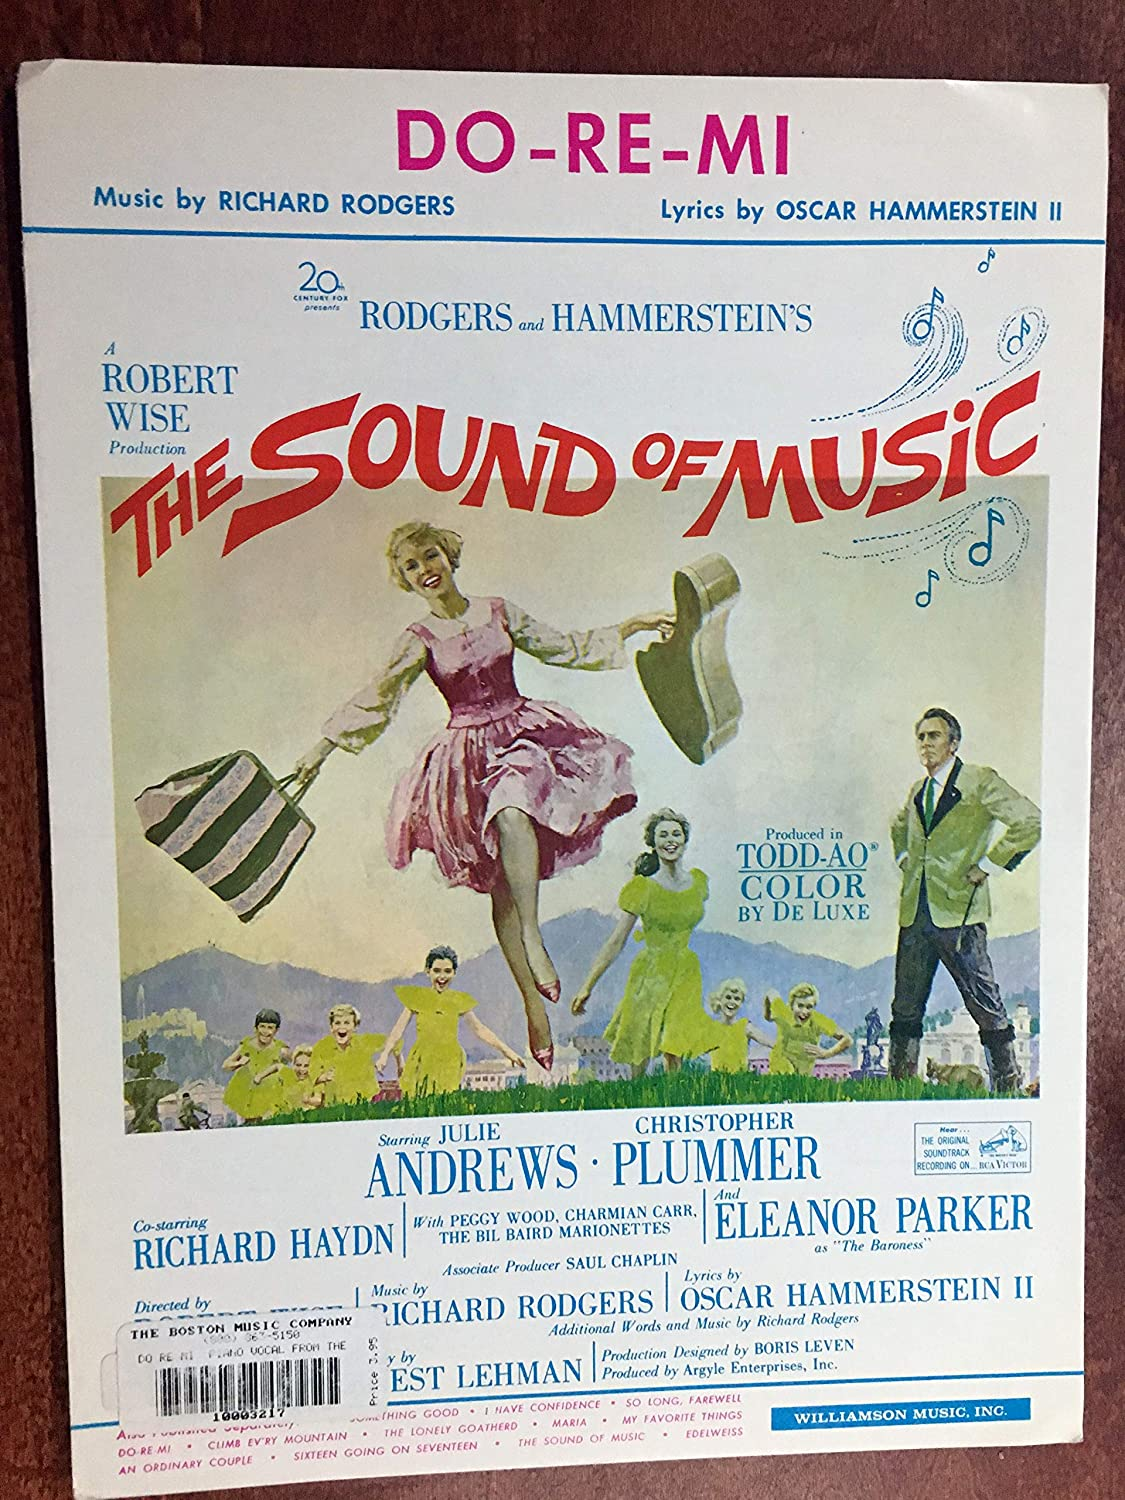 DO-RE-MI (Rodgers and Hammerstein SHEET MUSIC) 1965